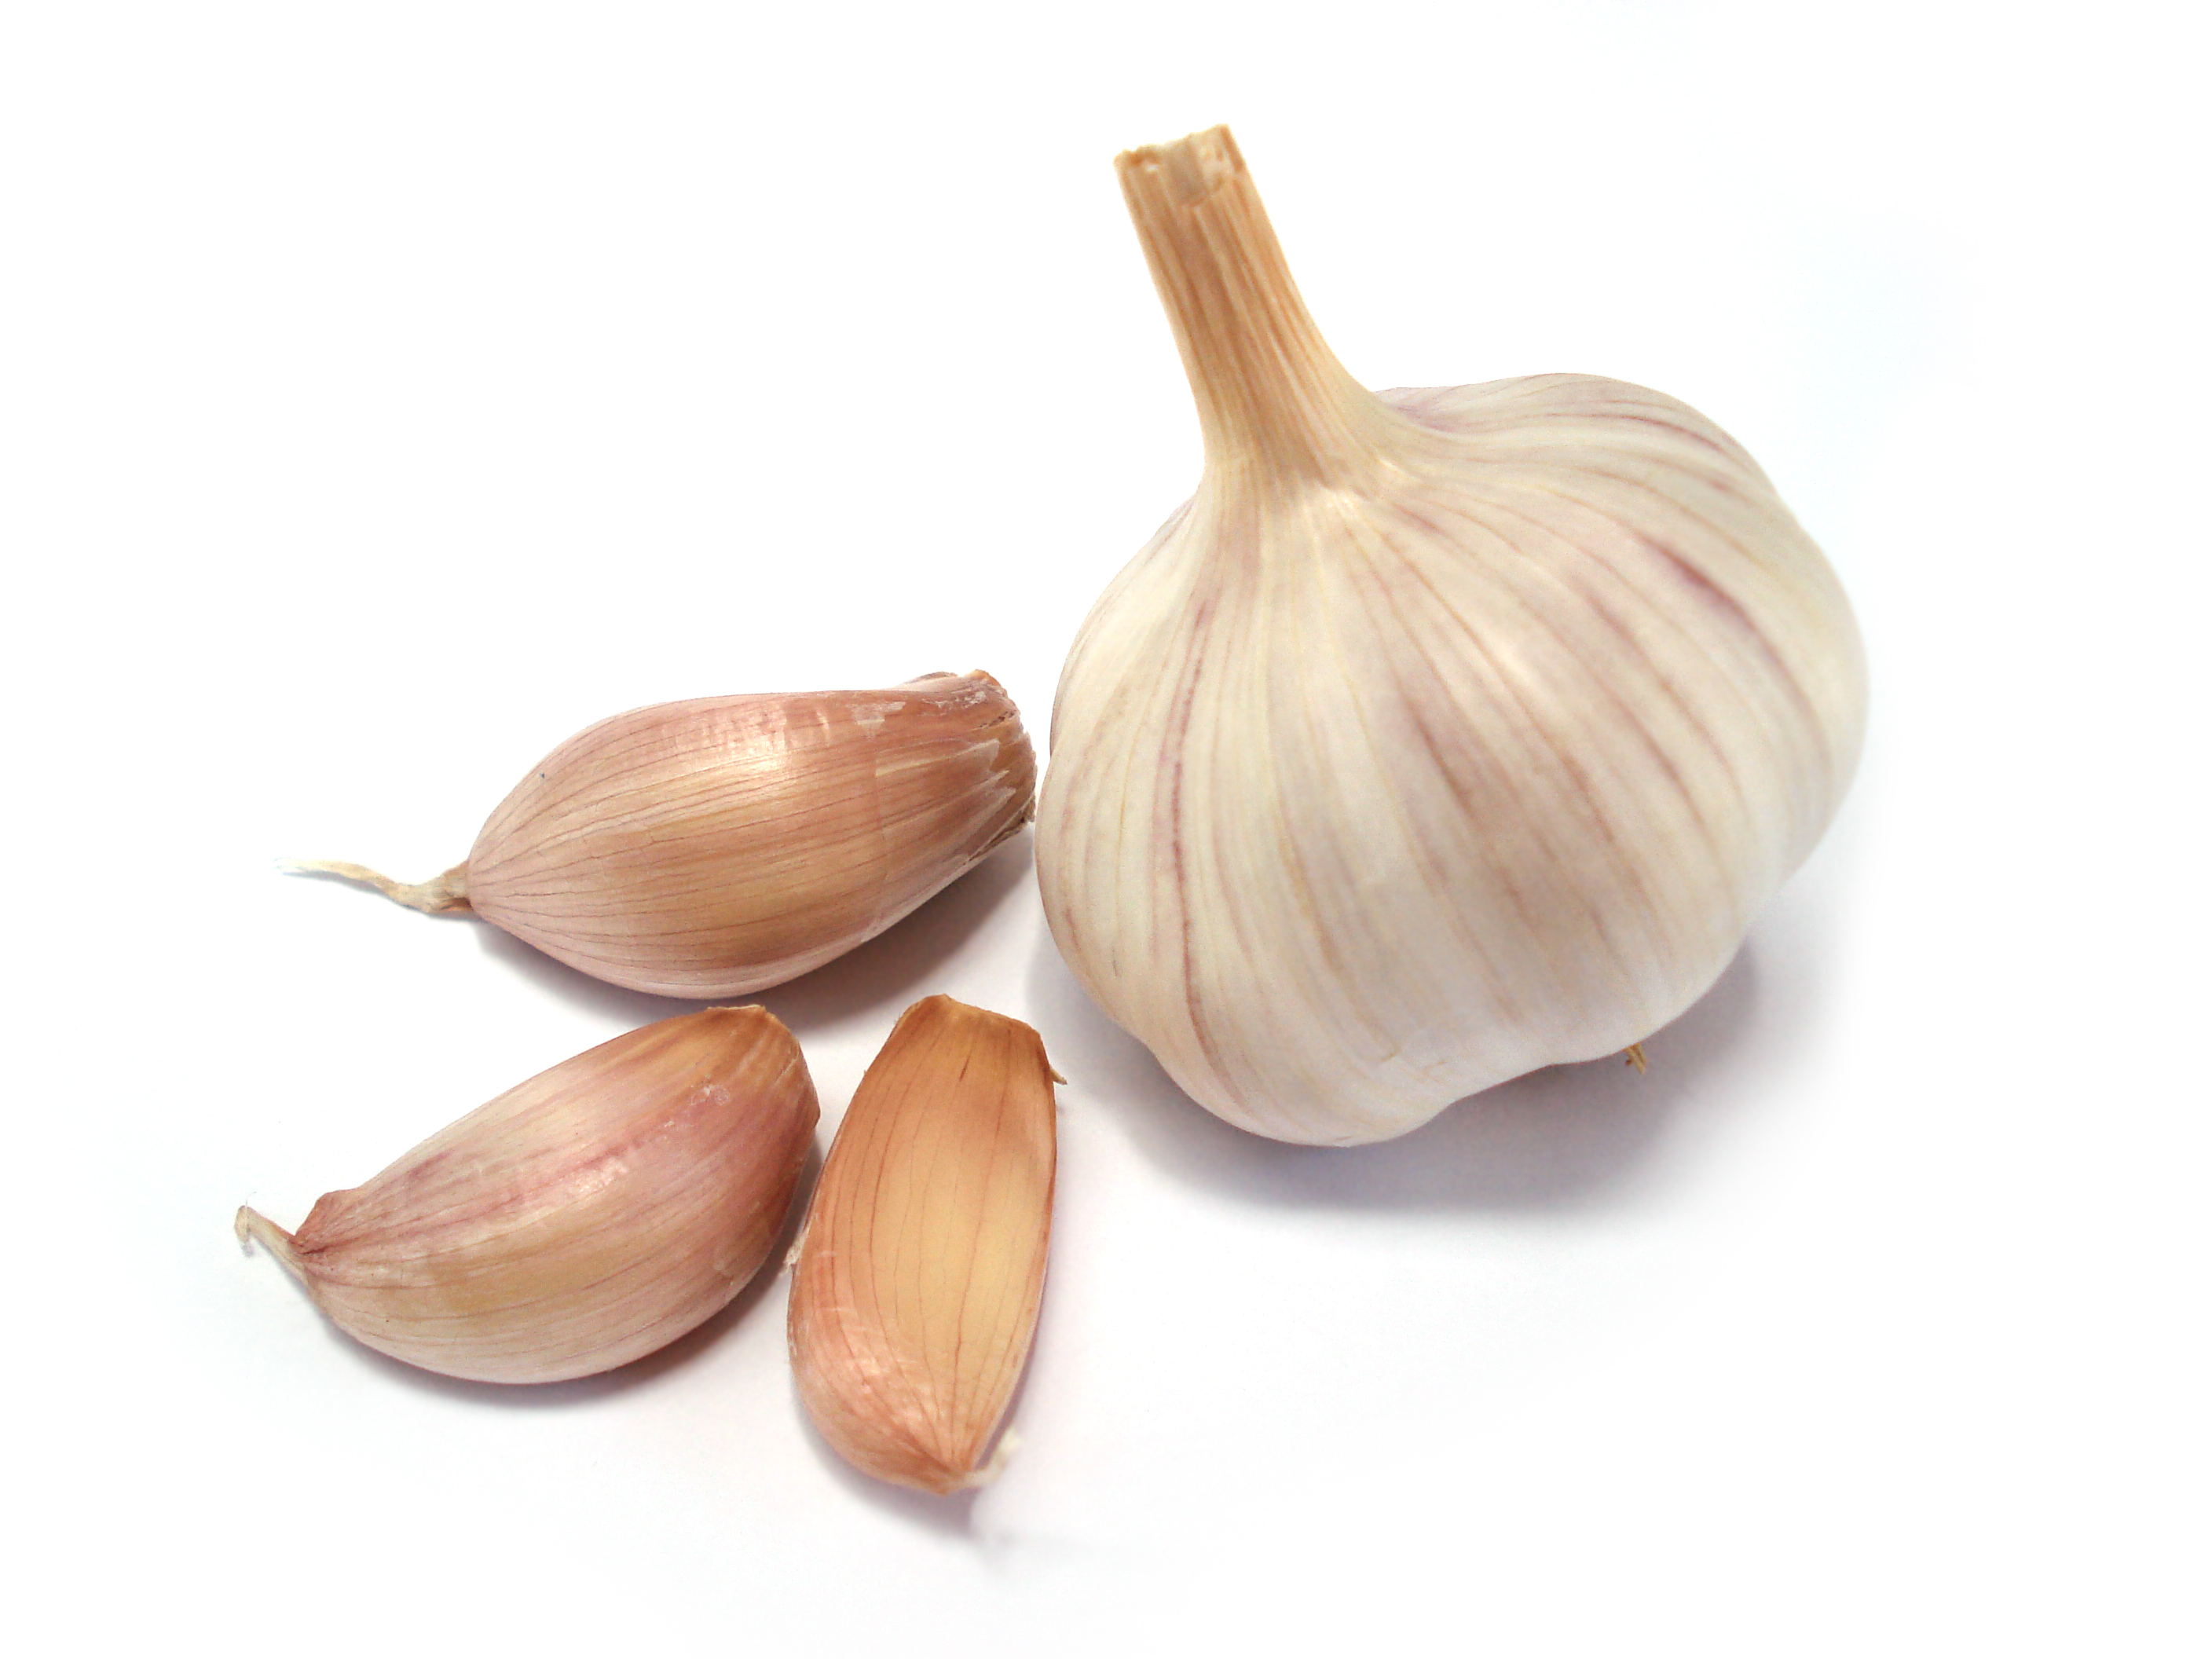 Cool Dream Definition Garlic - Dreamicus